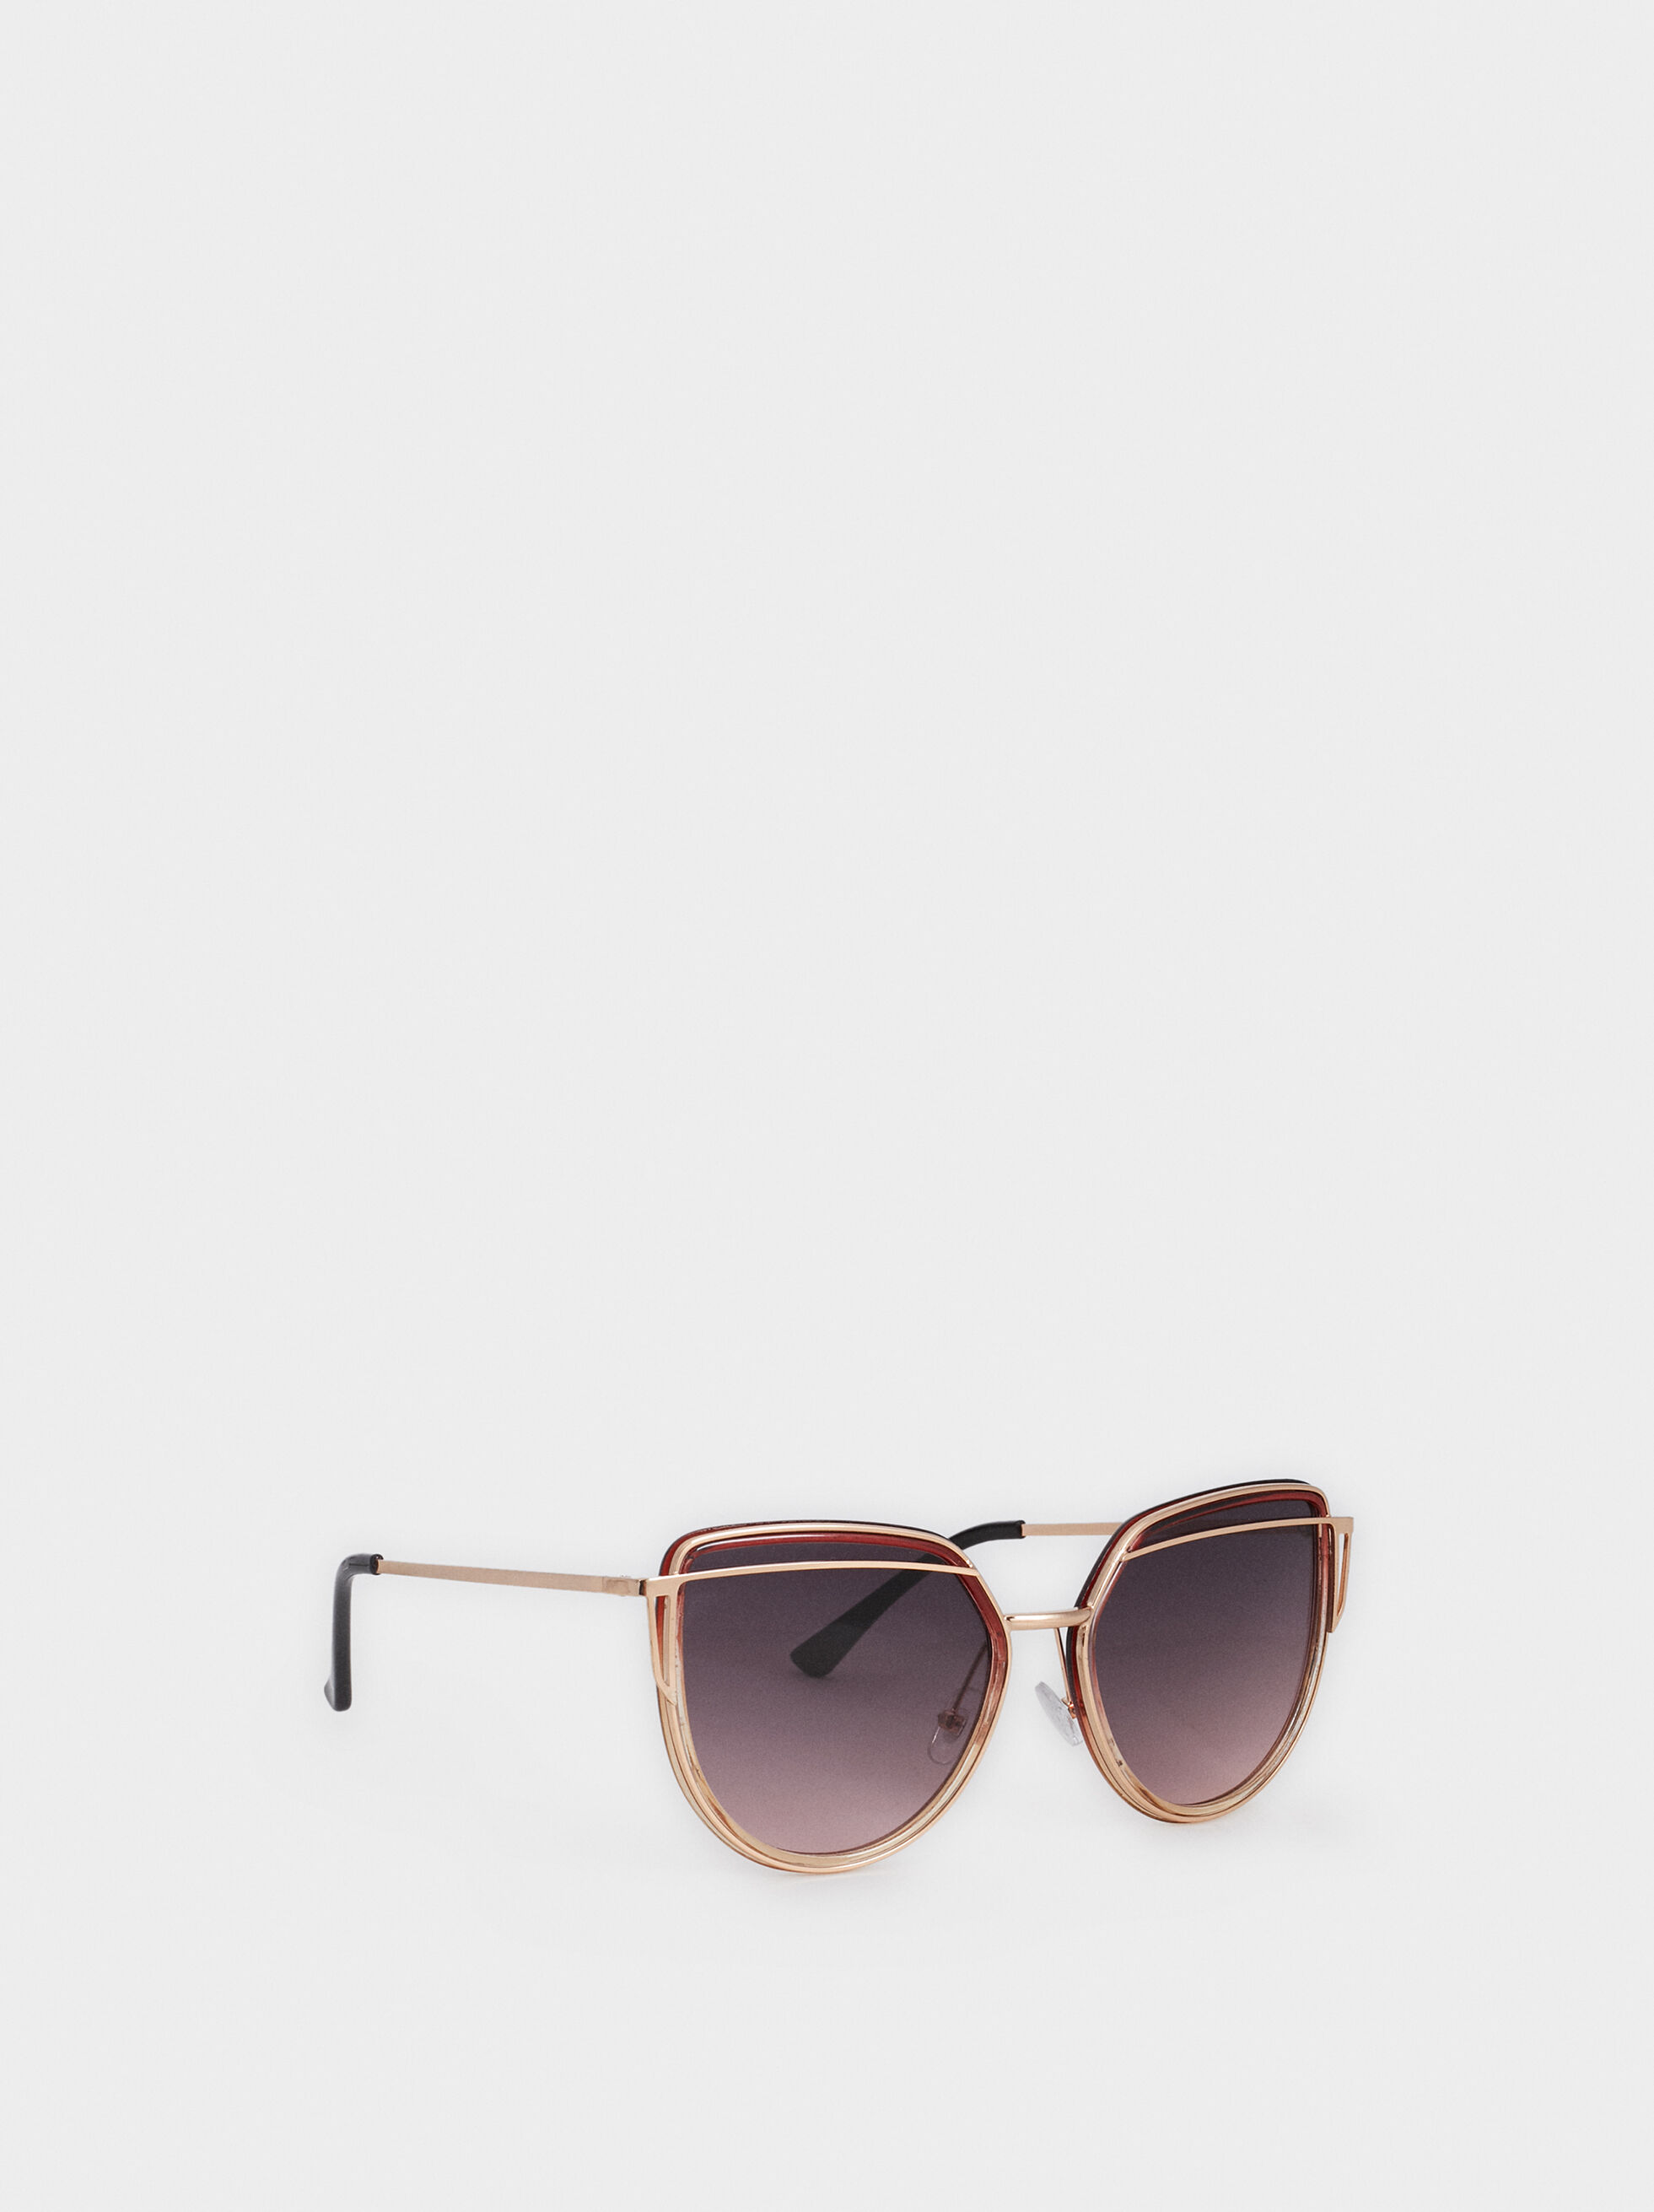 Cat Eye Sunglasses, Golden, hi-res